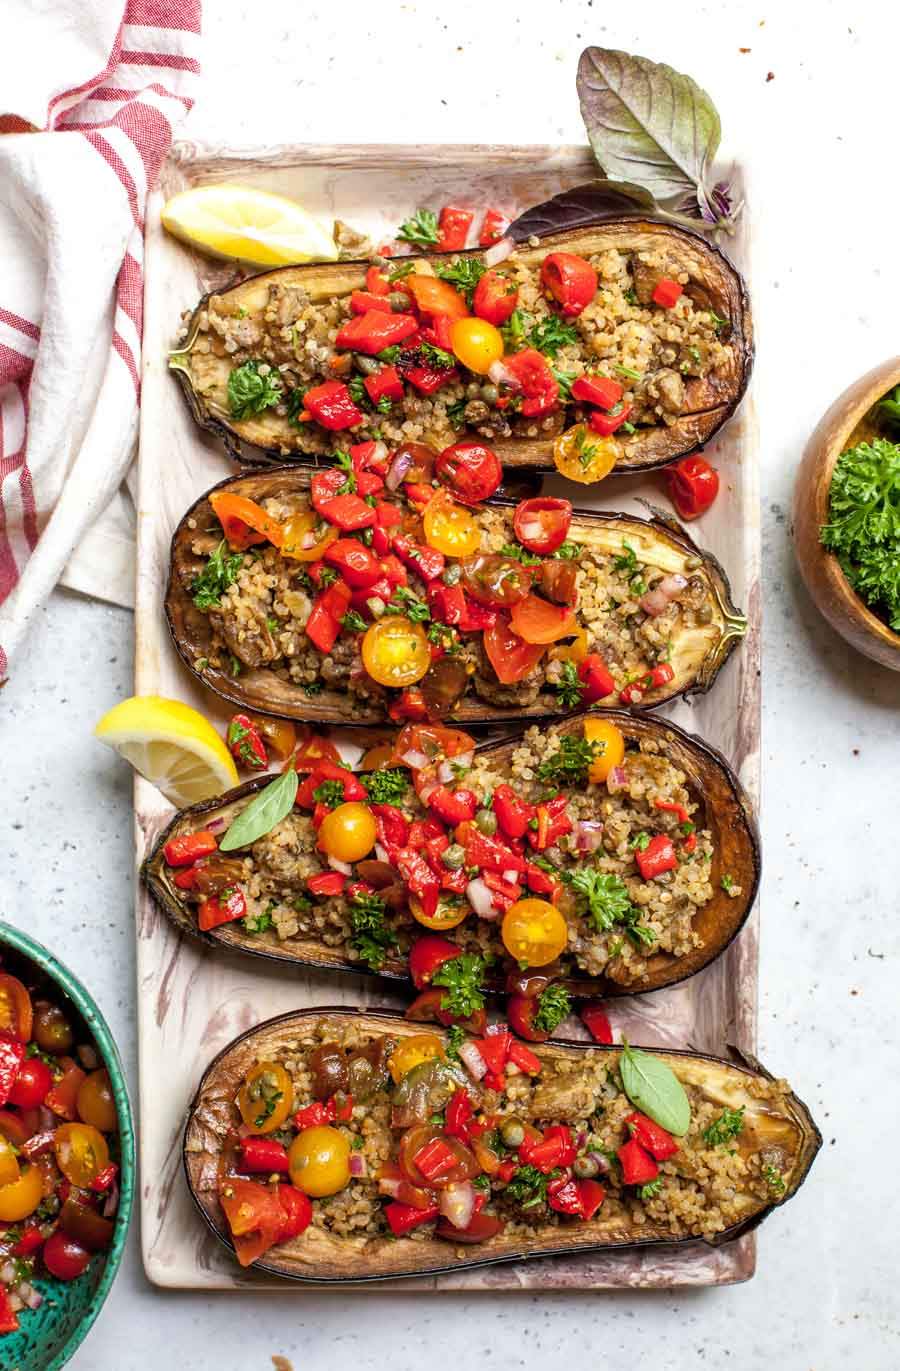 Mediterranean Stuffed Eggplant with Salsa